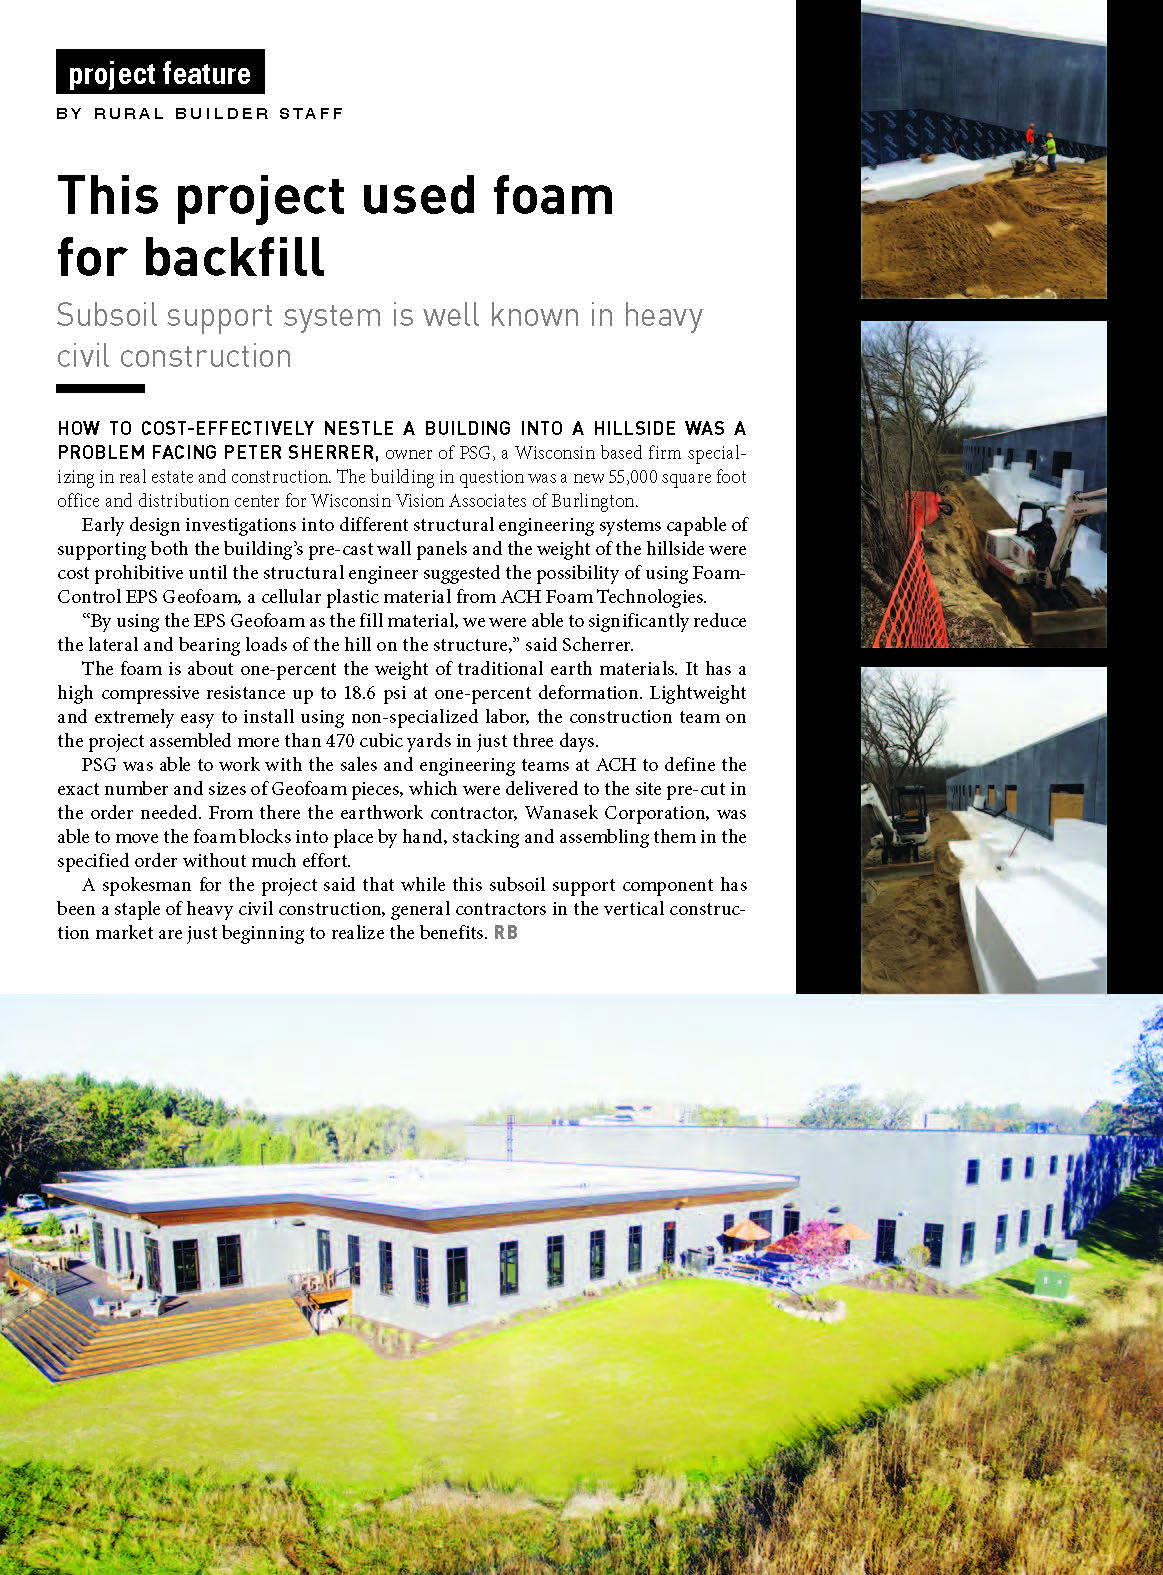 WVA, Inc. project, PSG, Inc. and Wanasek Corp. featured in multiple publications for use of Geofoam